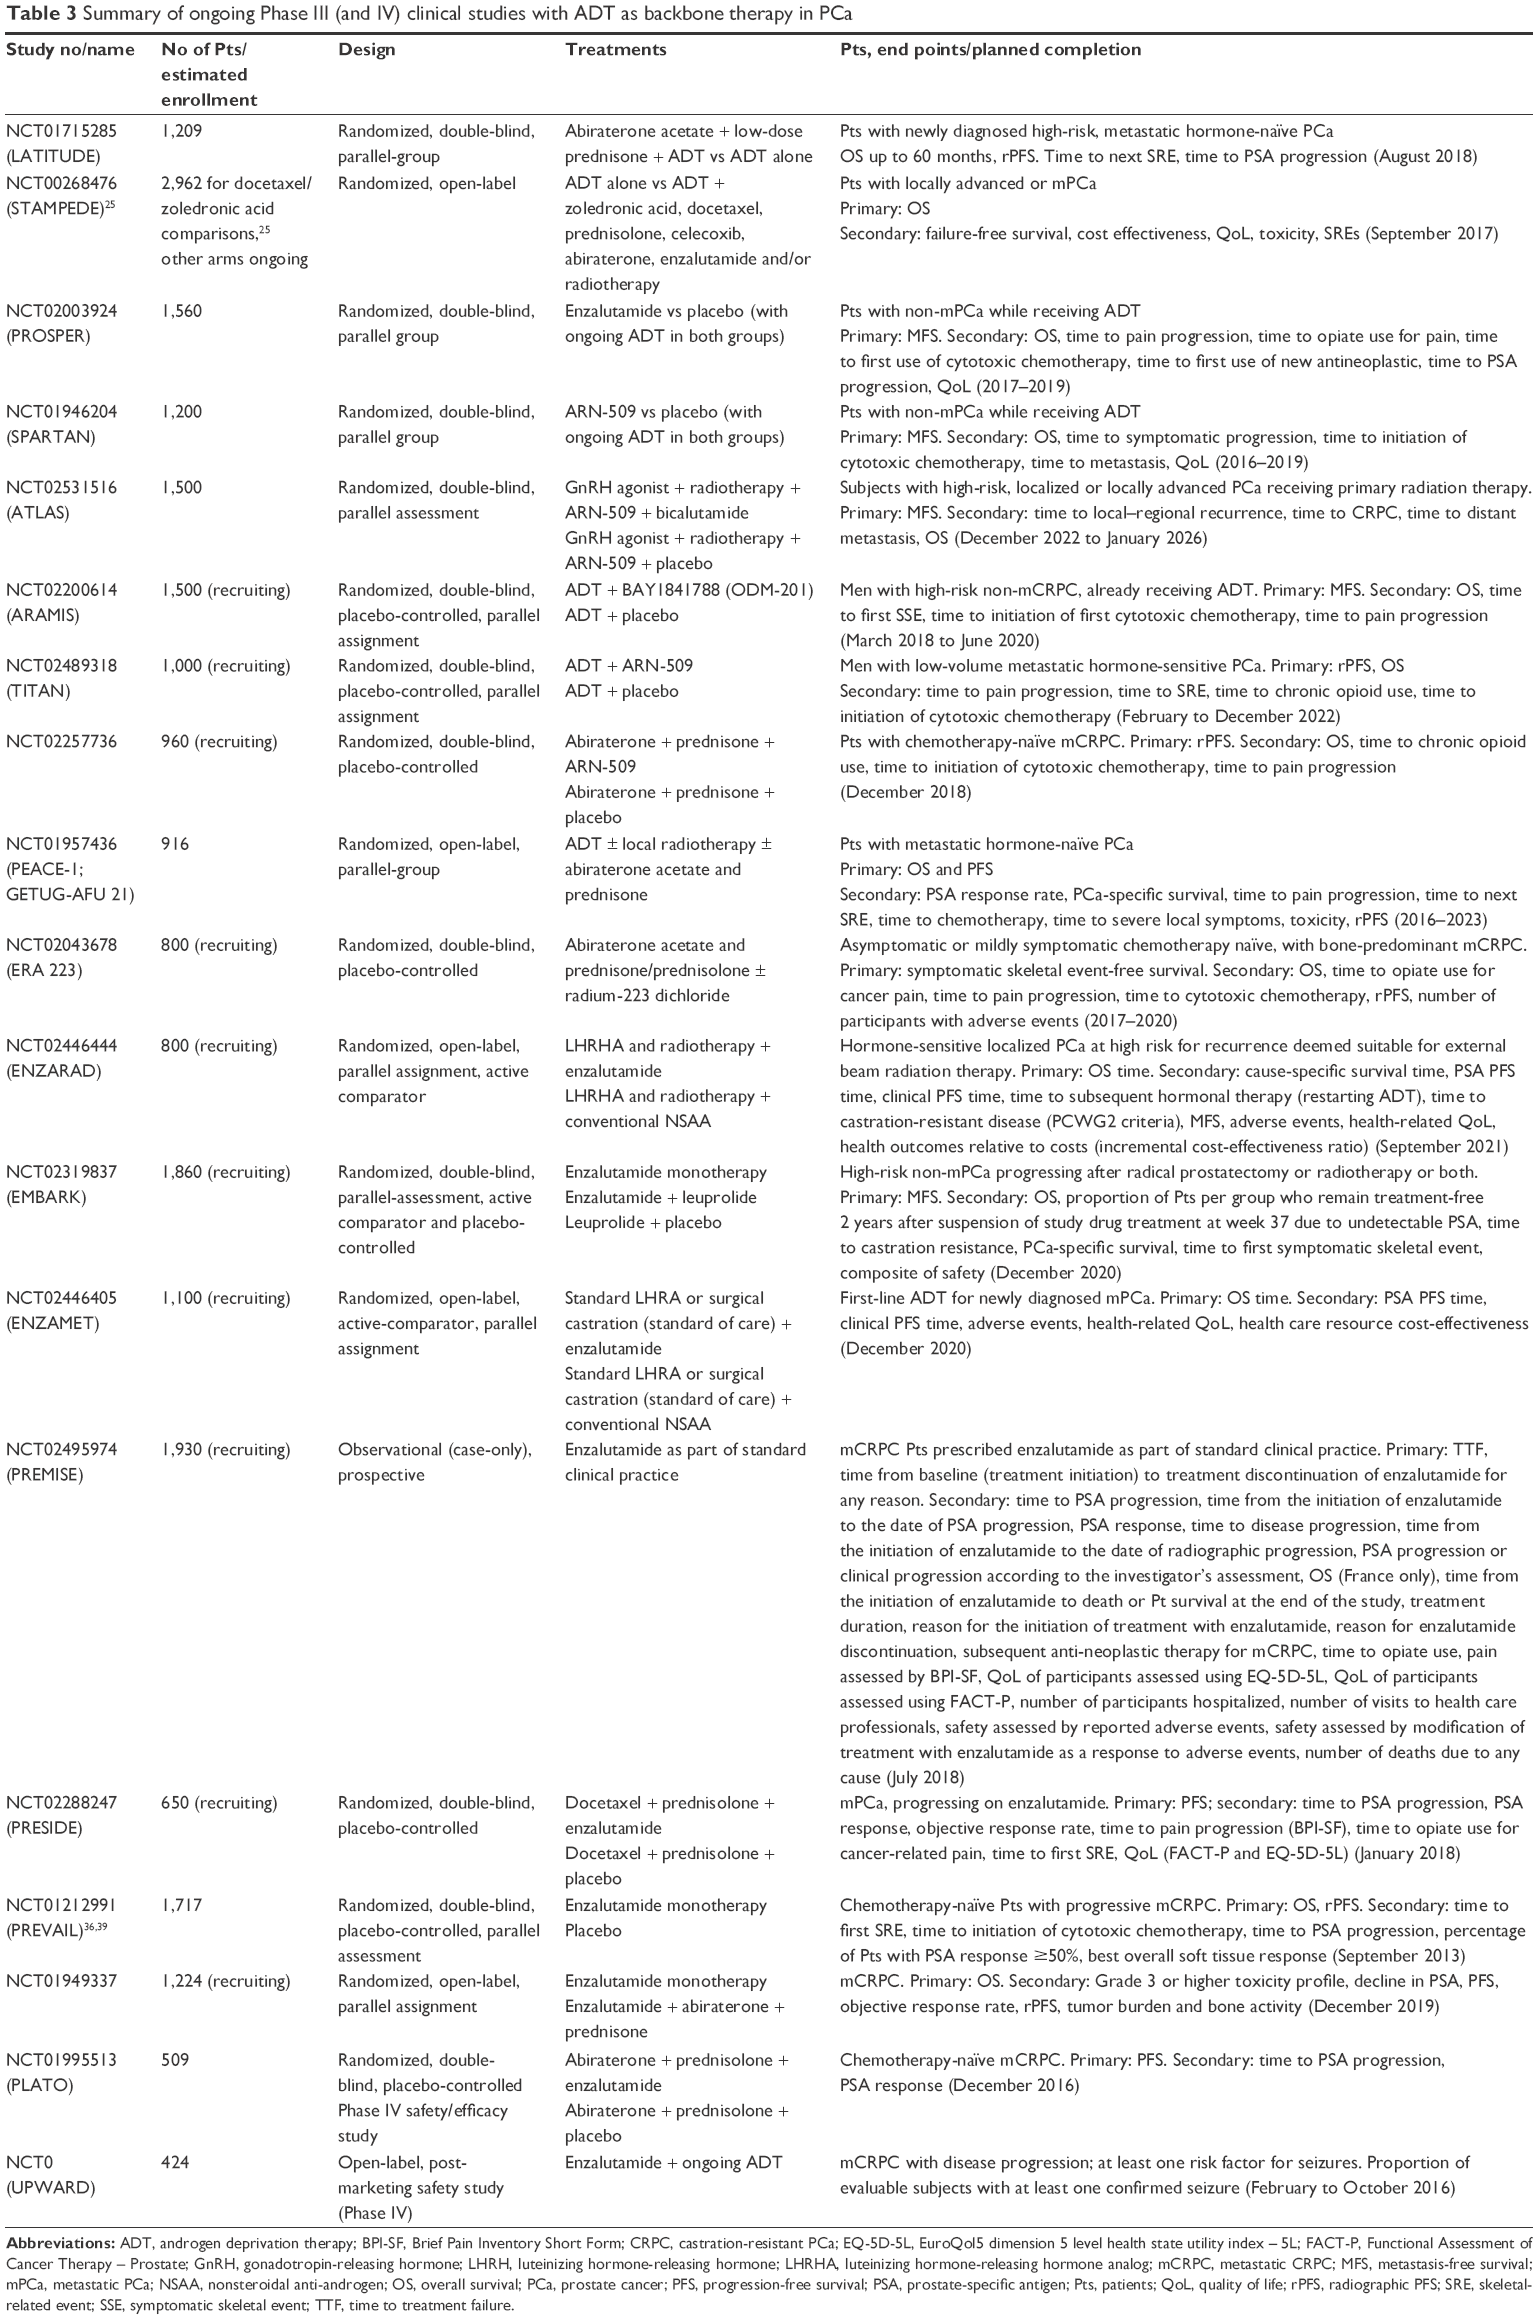 Full text] Androgen deprivation therapy as backbone therapy